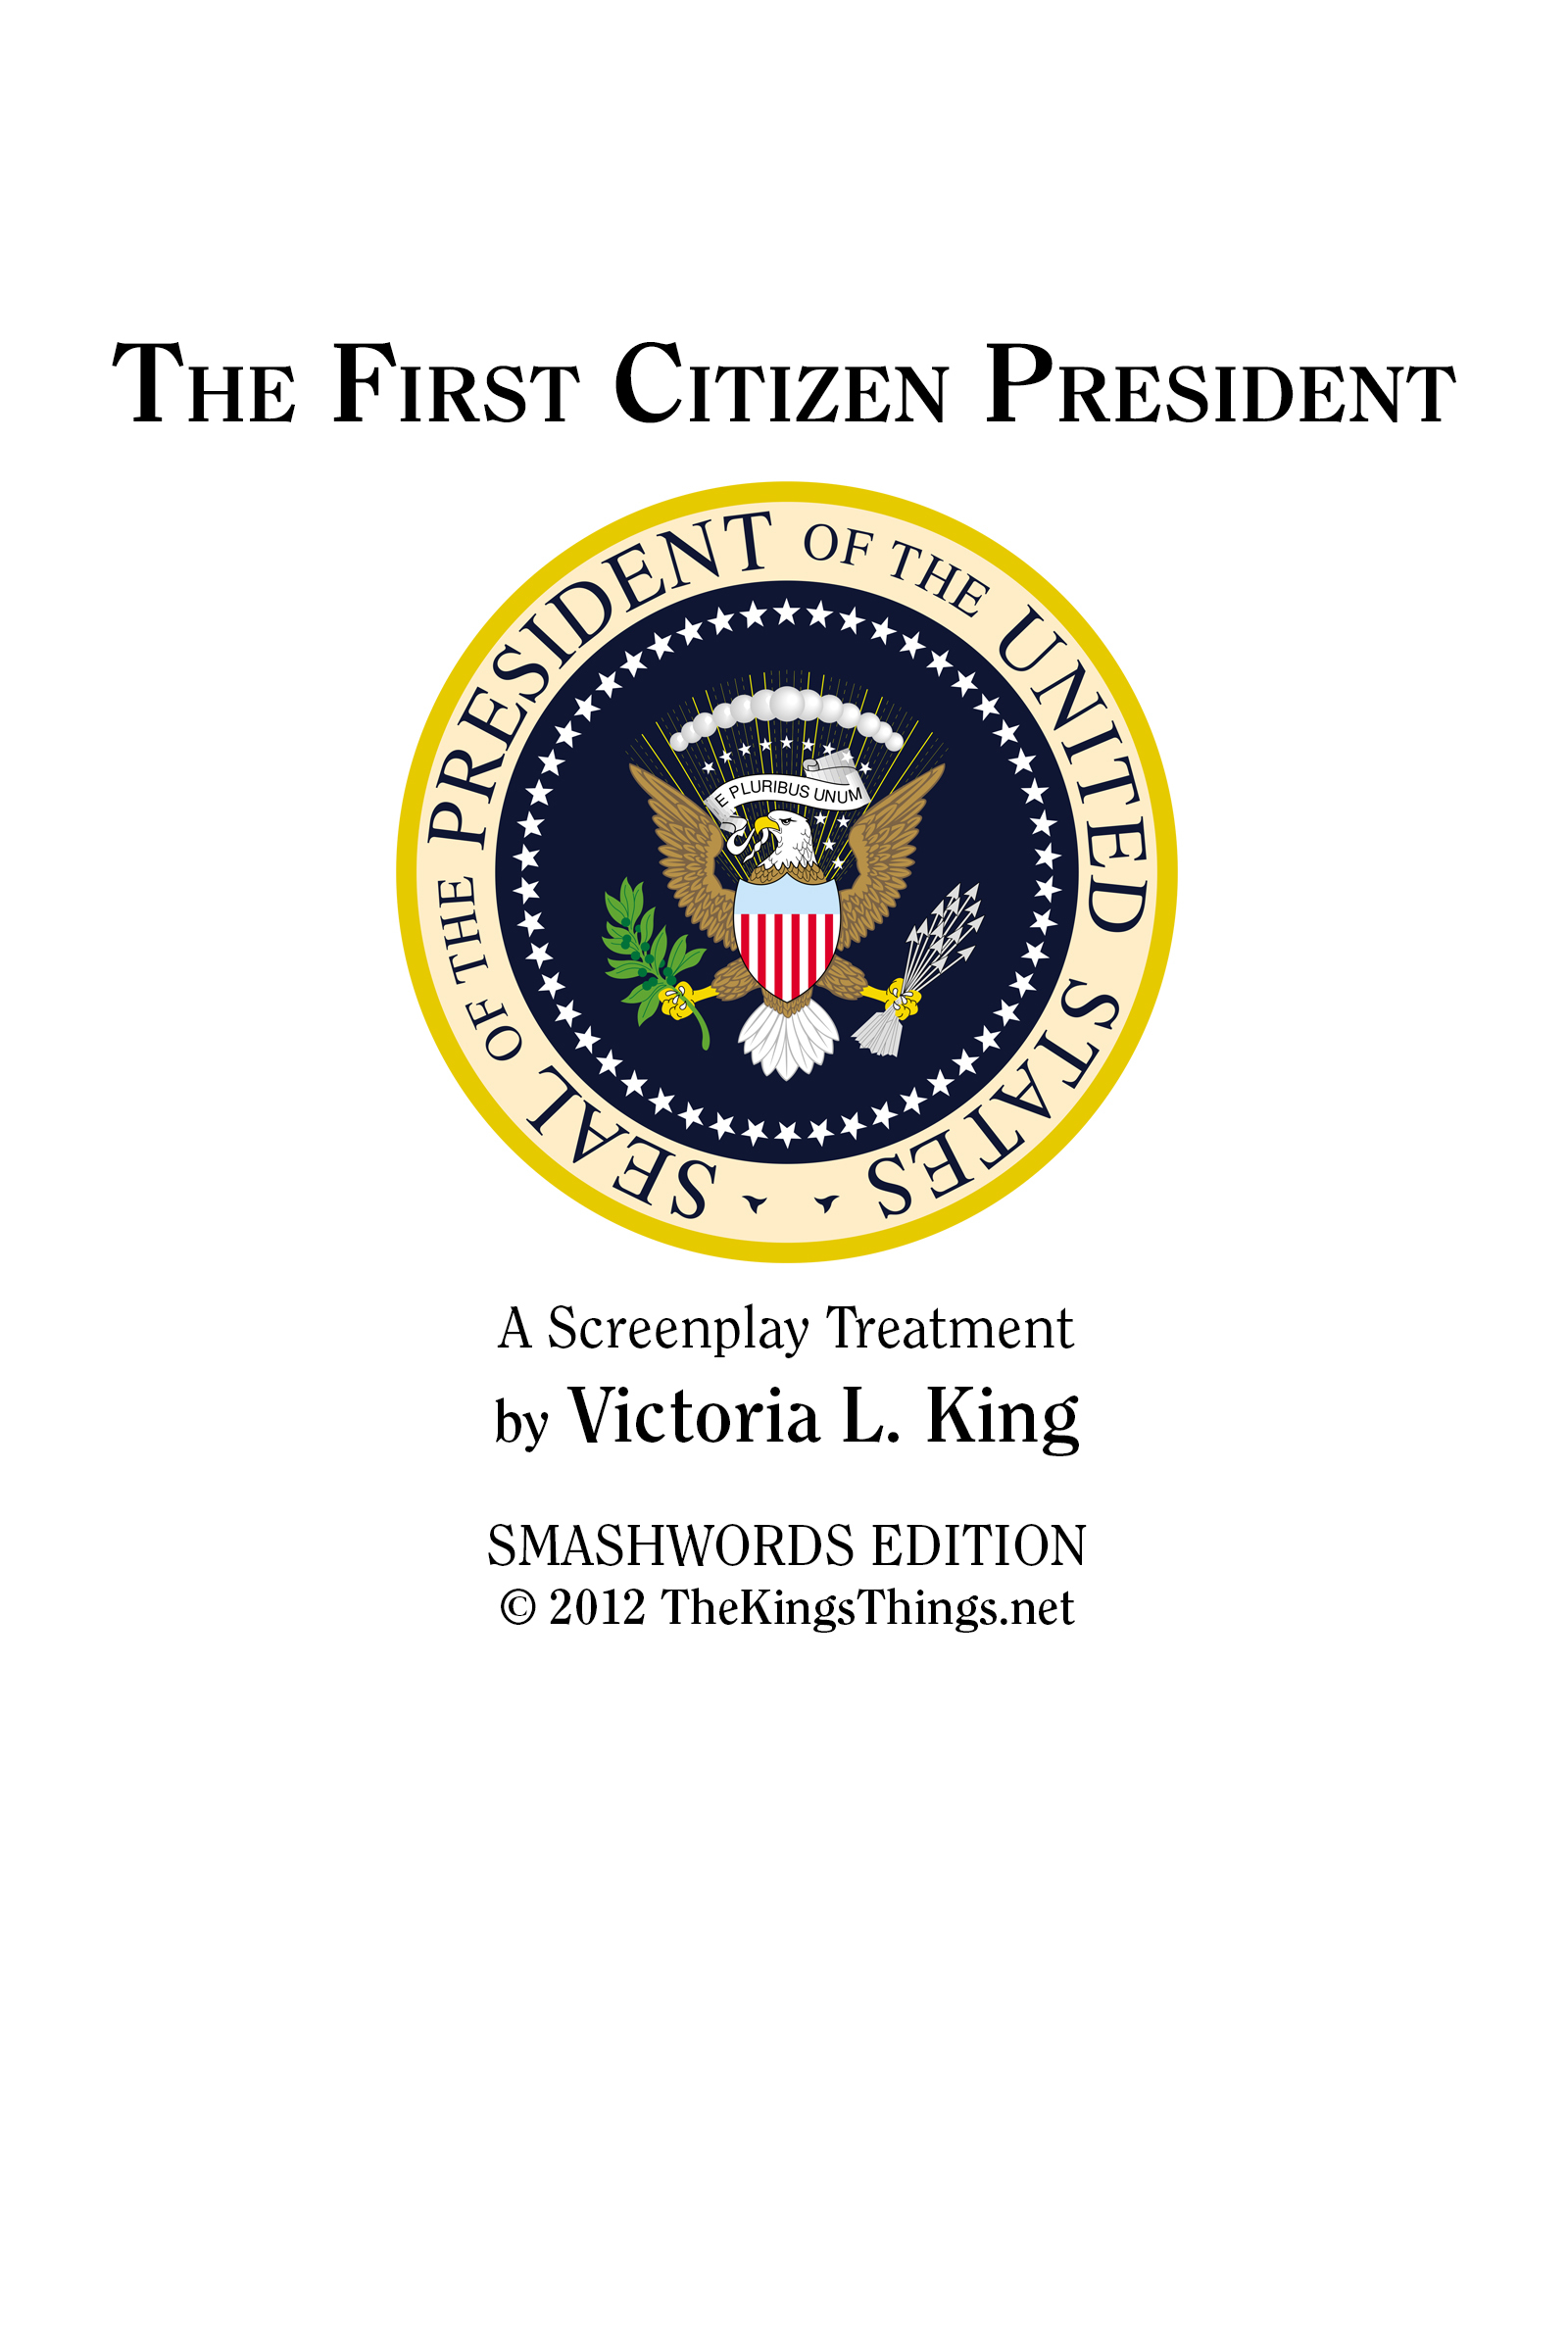 The First Citizen President